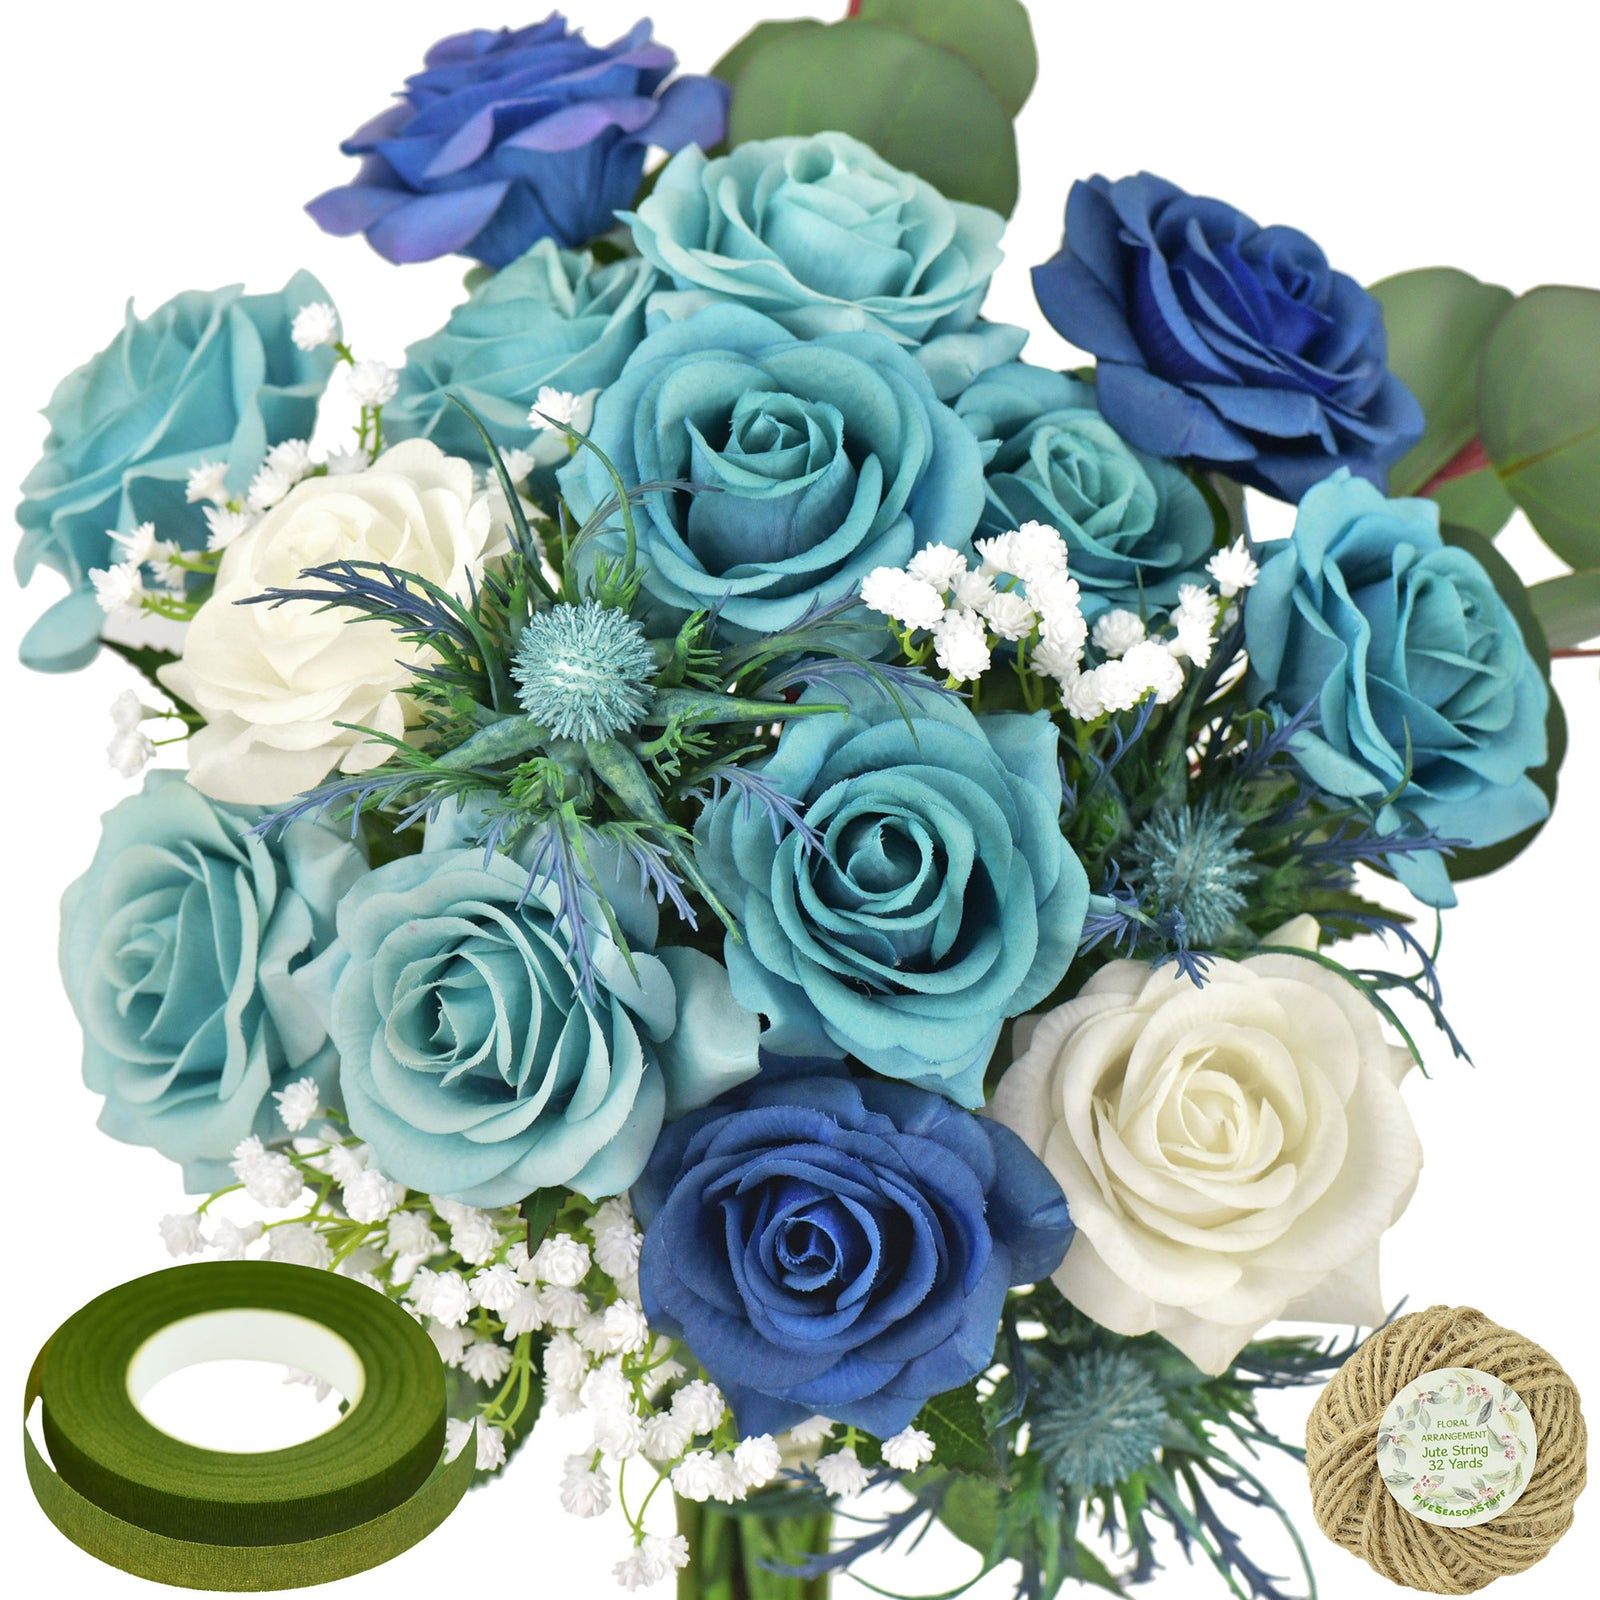 28 PCS DIY Set Real Touch Mix Blue Roses Sea Holly Thistle Artificial Flowers Arrangement Silk Bouquet for Gift Home Wedding Bridal FiveSeasonStuff